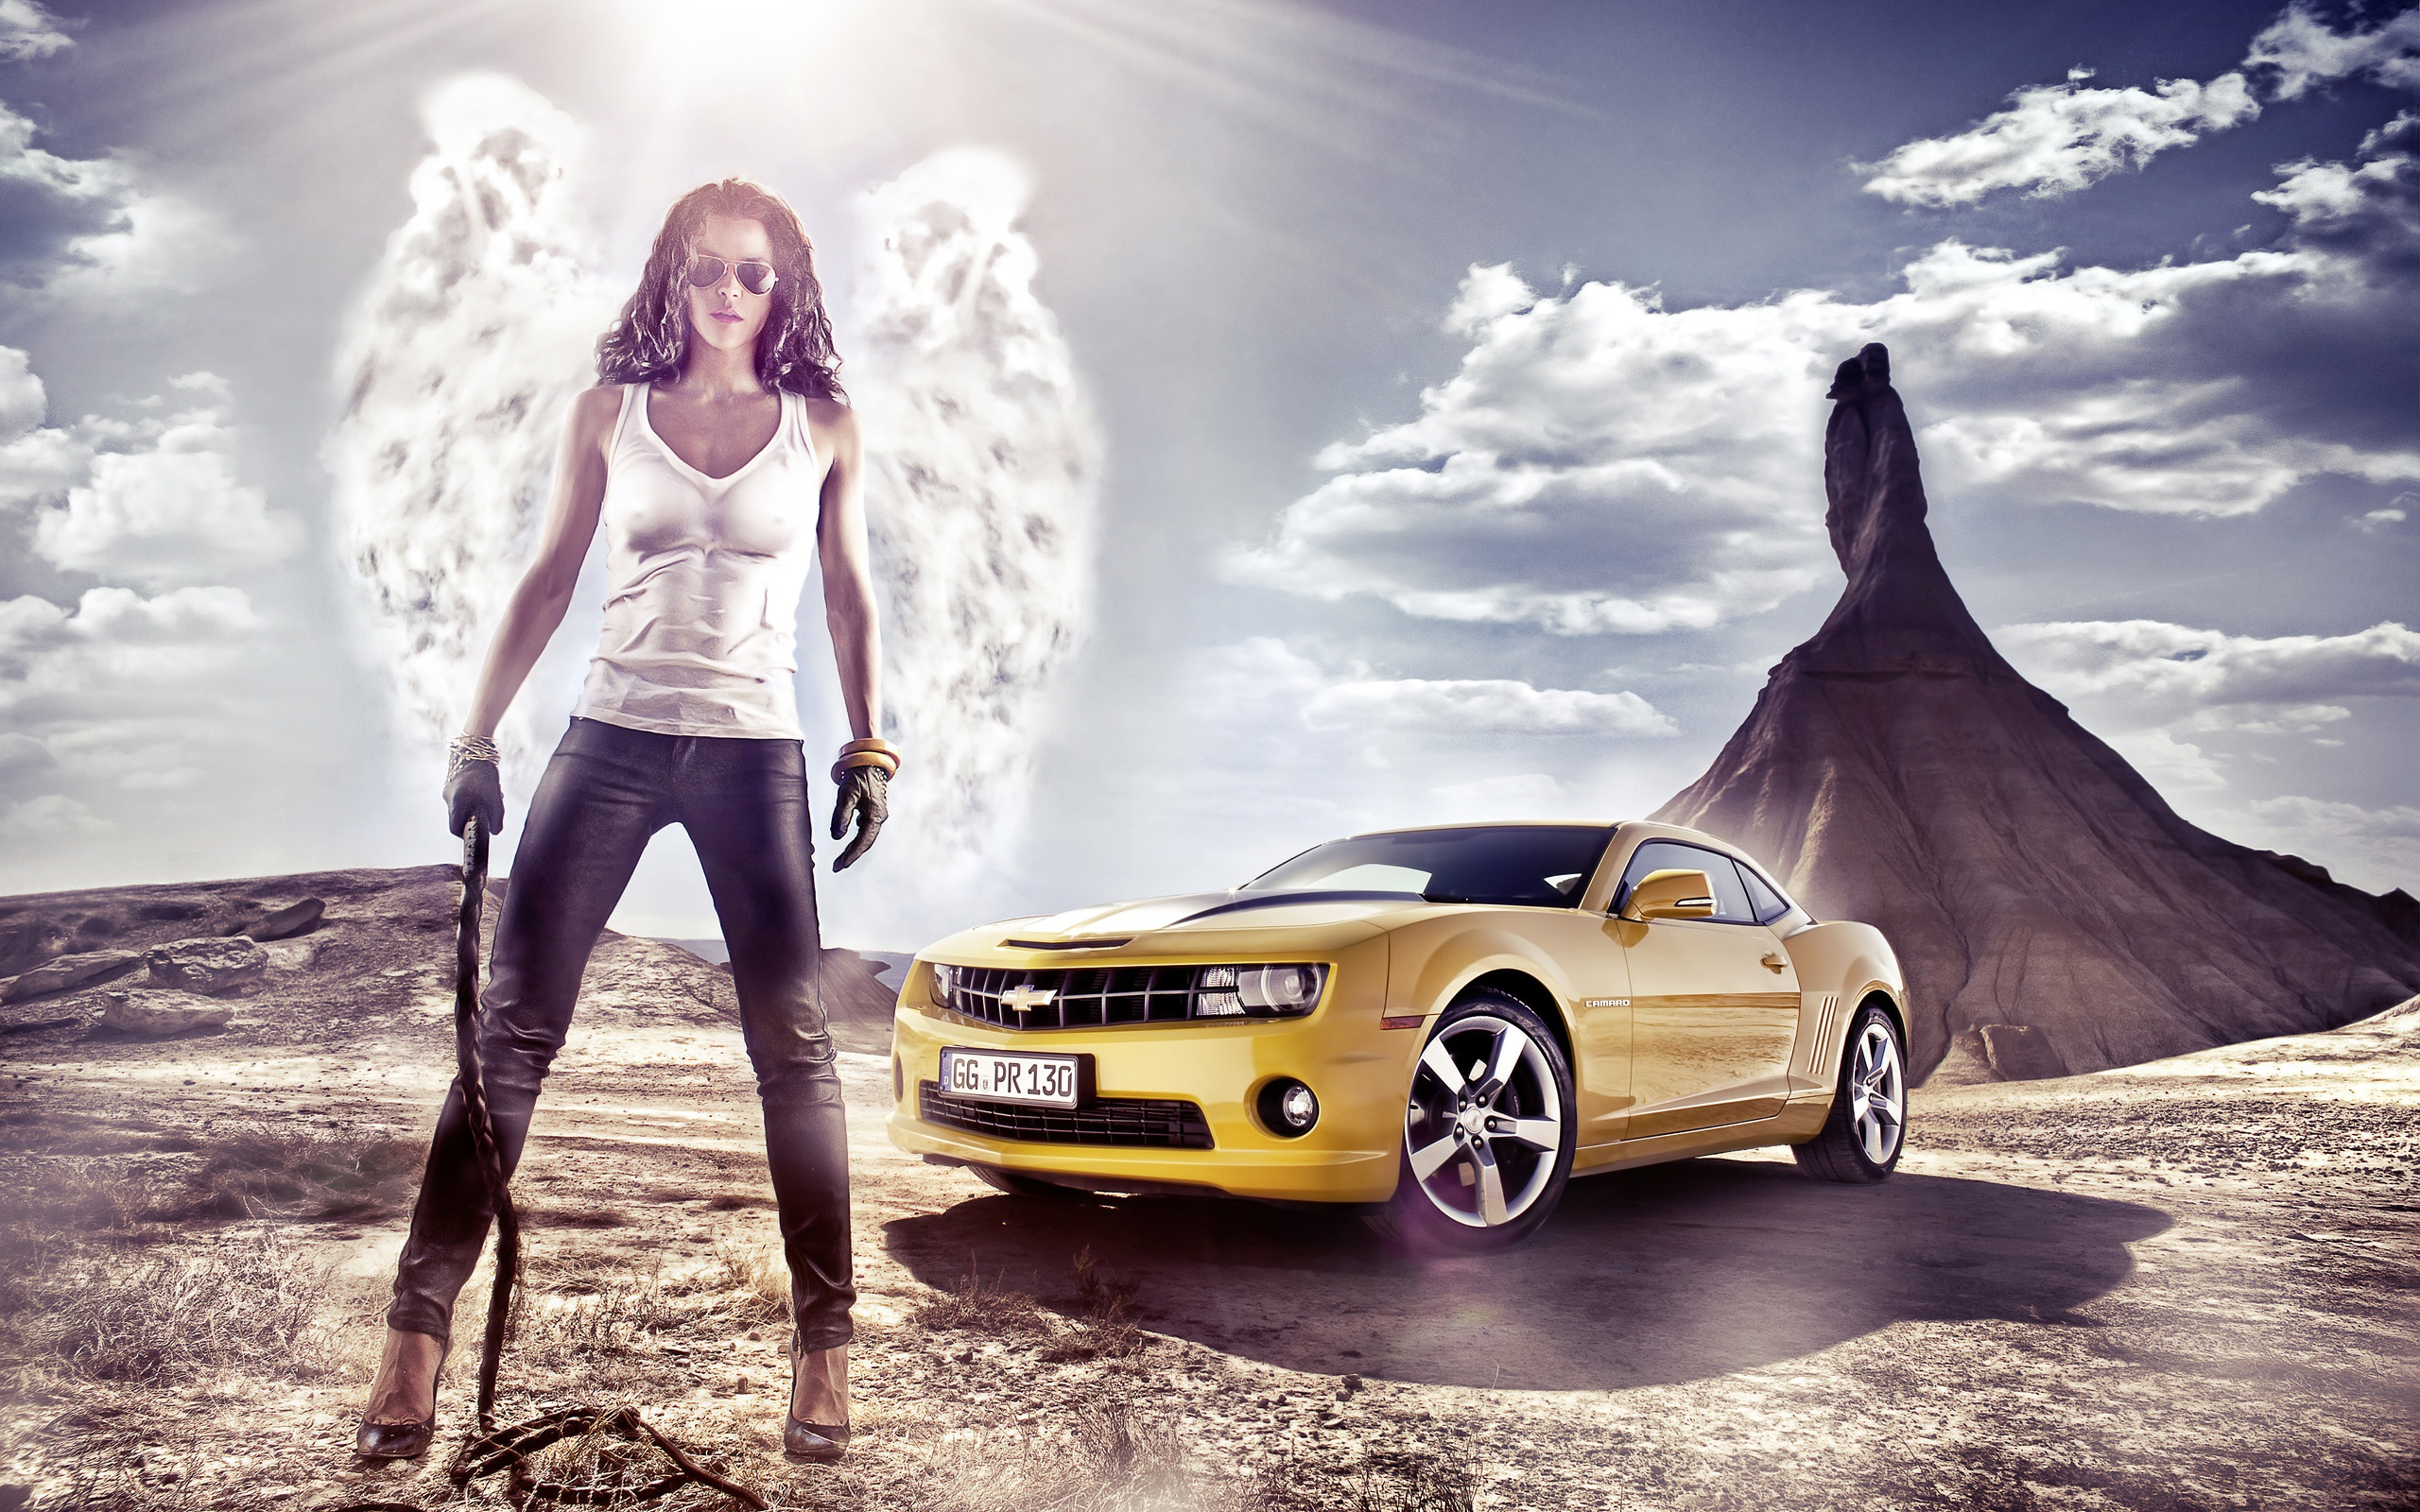 41 chevy girls wallpapers on wallpapersafari - Muscle car girl wallpaper ...